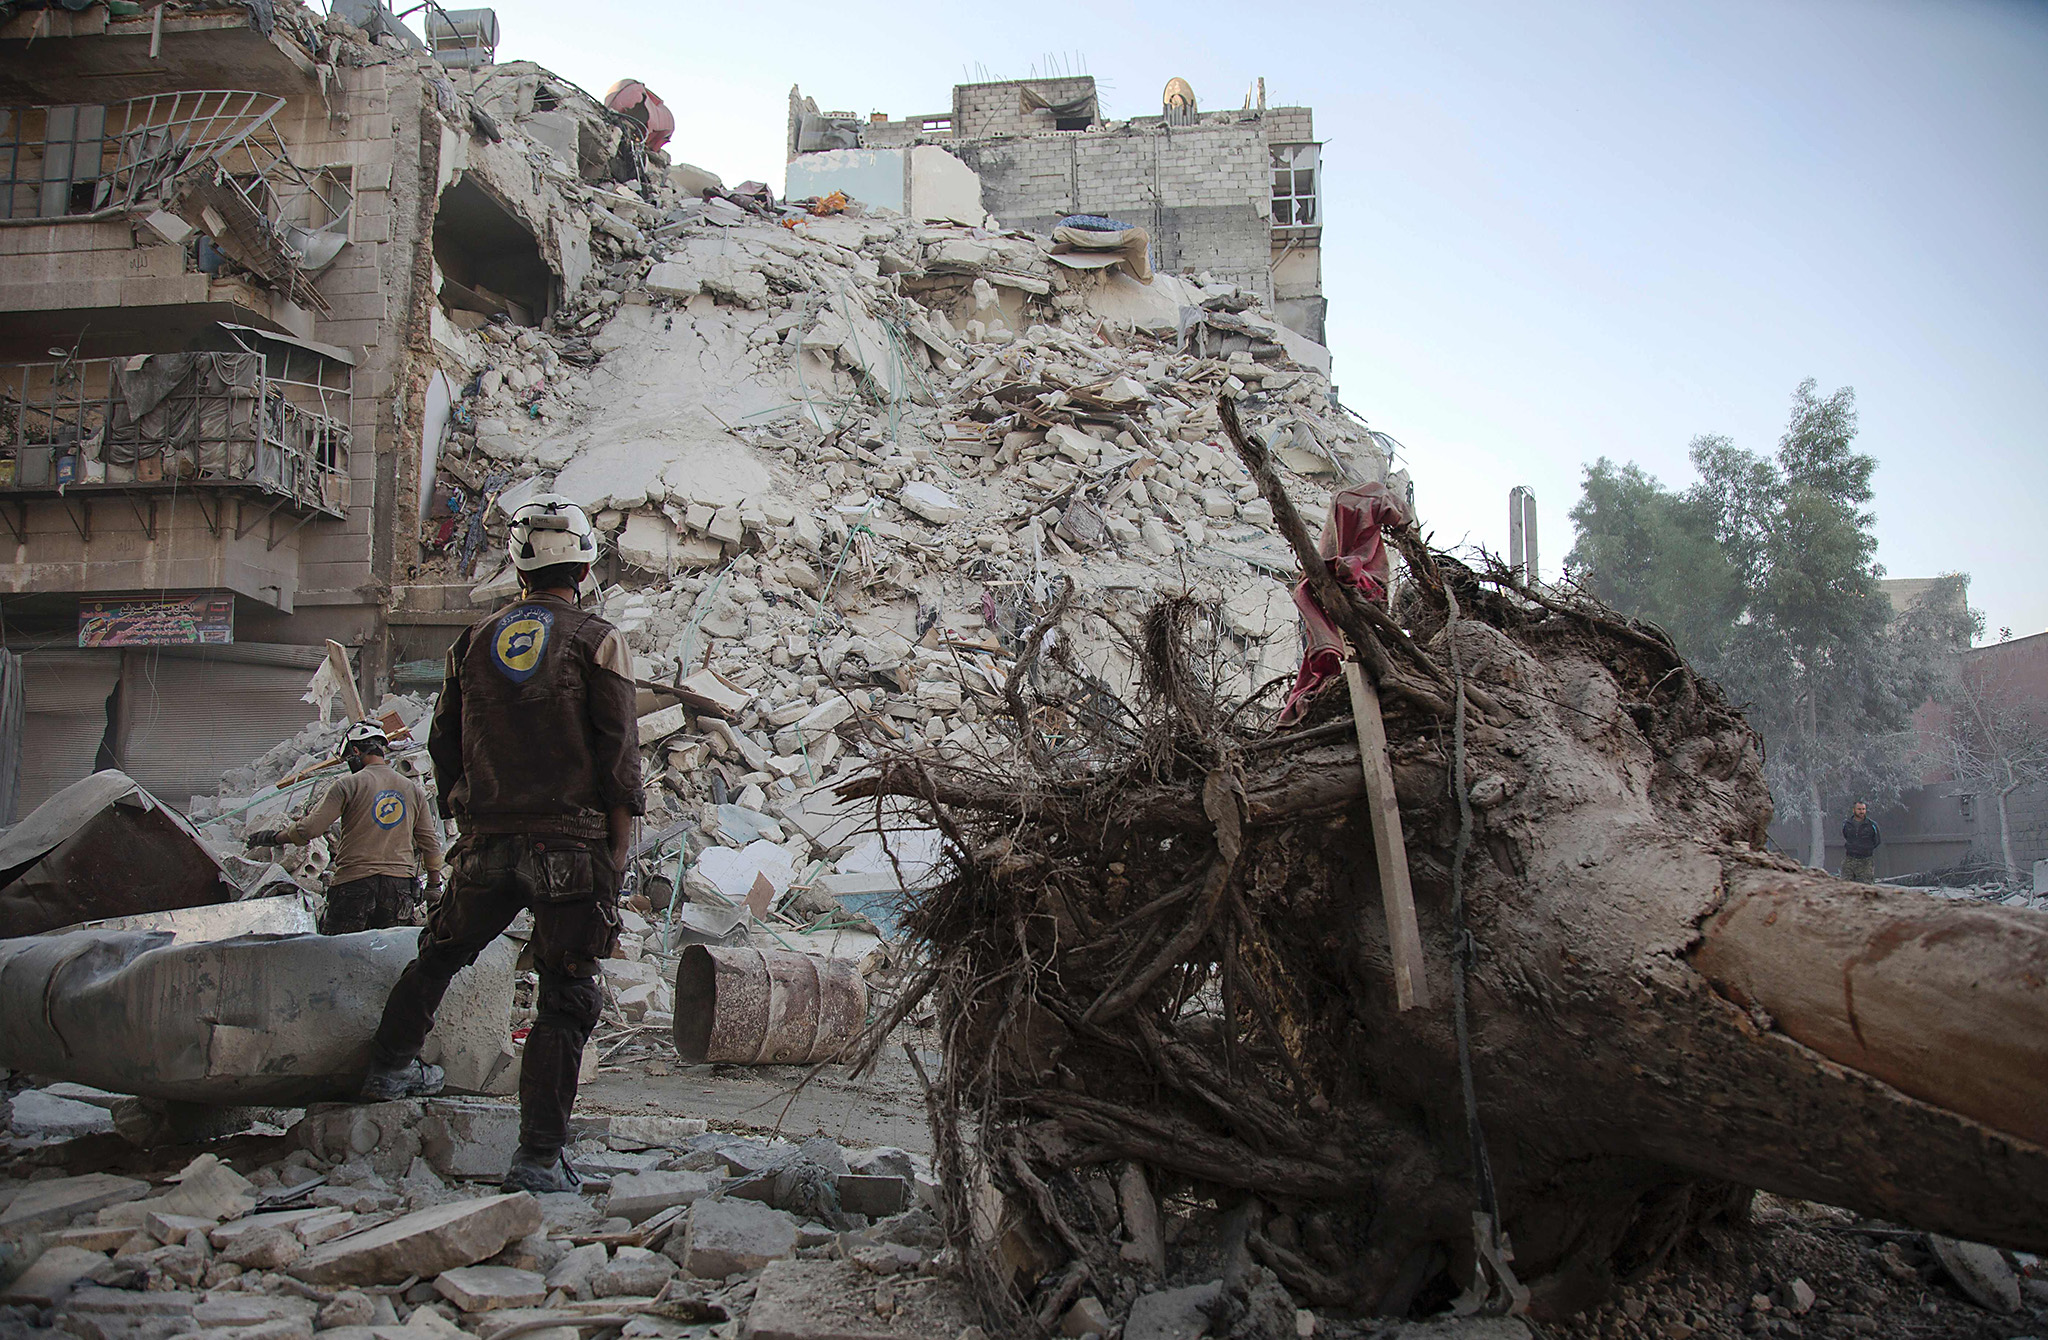 A member of the Syrian Civil Defence, known as the White Helmets, stands amid the rubble of a destroyed building during a rescue operation following reported air strikes in the rebel-held Qatarji neighbourhood of the northern city of Aleppo, on October 17, 2016.  Dozens of civilians were killed as air strikes hammered rebel-held parts of Aleppo early morning, despite Western warnings of potential sanctions against Syria and Russia over attacks on the city. Both Russian and Syrian warplanes are carrying out air strikes over Aleppo in support of a major offensive by regime forces to capture rebel-held parts of the northern city.  / AFP PHOTO / KARAM AL-MASRIKARAM AL-MASRI/AFP/Getty Images